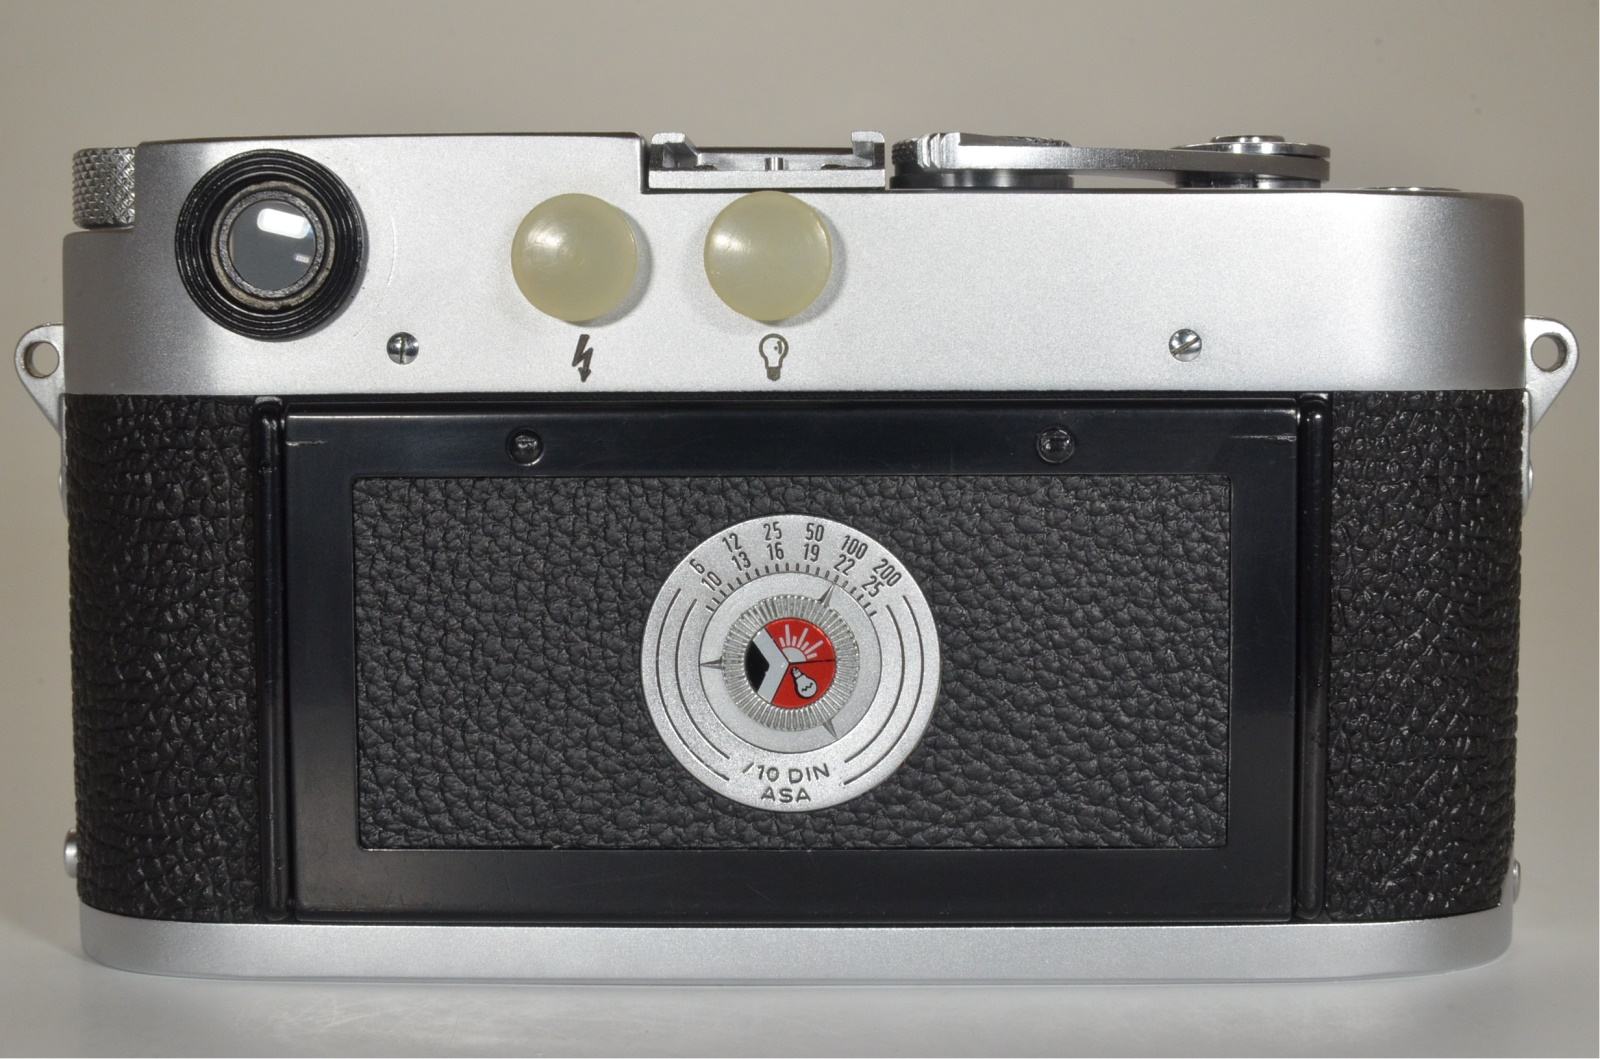 leica m3 double stroke s/n 758390 year 1955 the camera cla'd recently